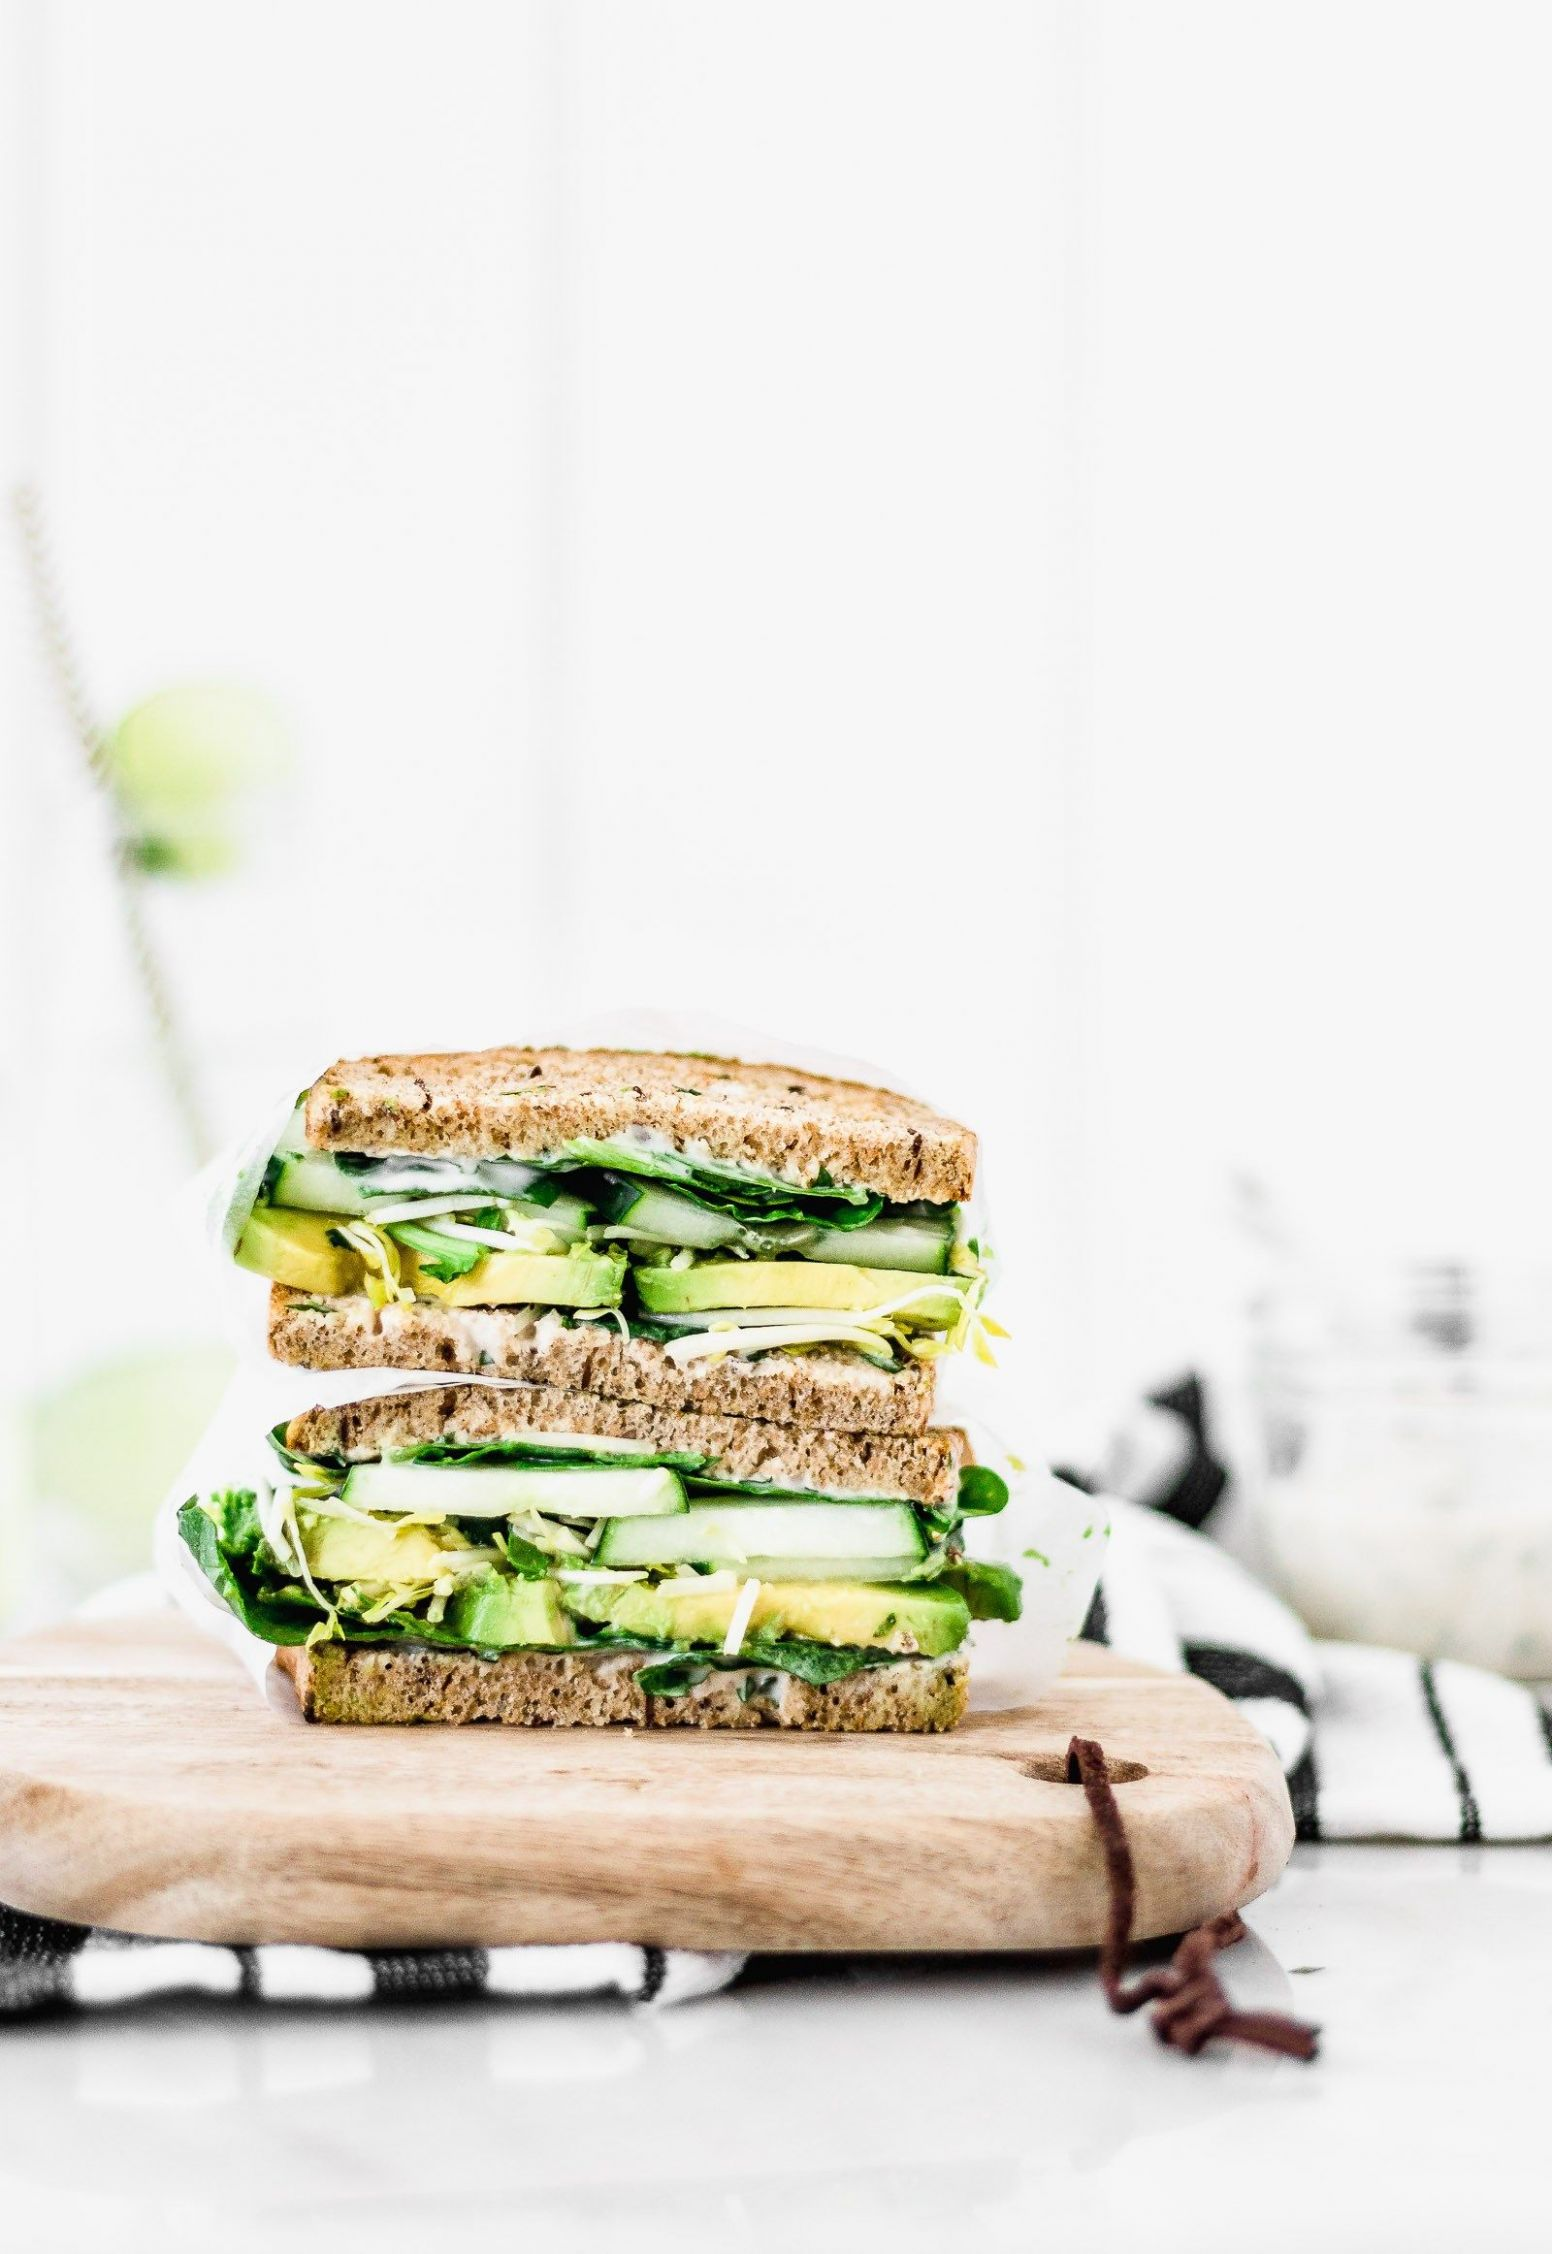 Green Goddess Sandwich - Sandwich Recipes Bbc Good Food